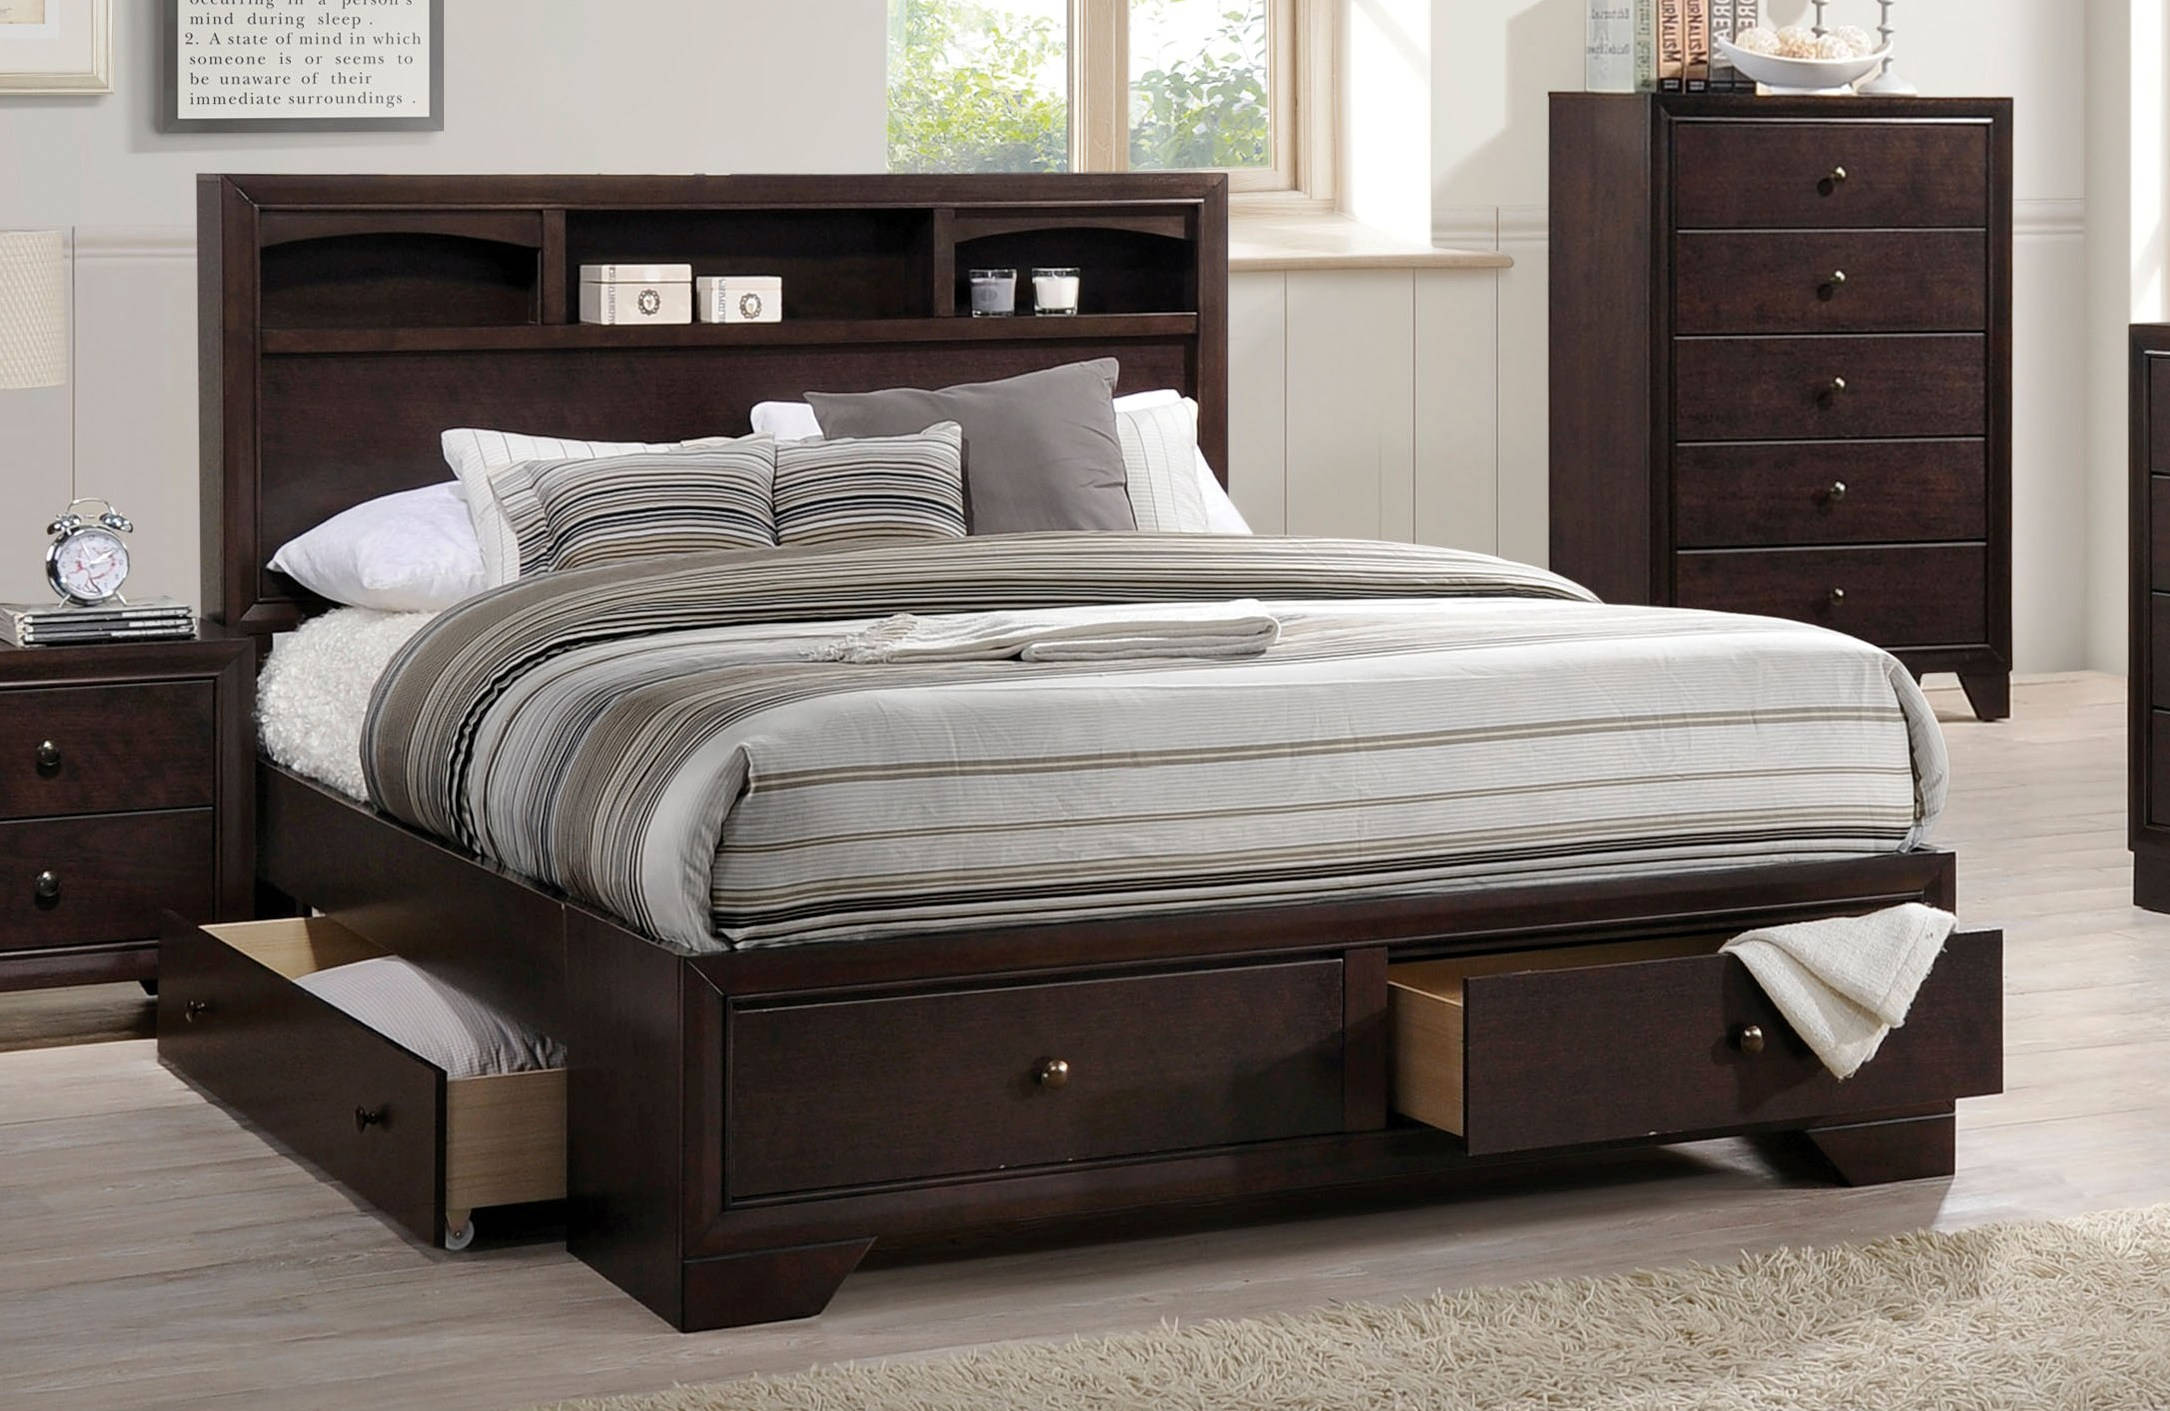 Acme Furniture Madison II Espresso Queen Storage Bed | The Classy Home